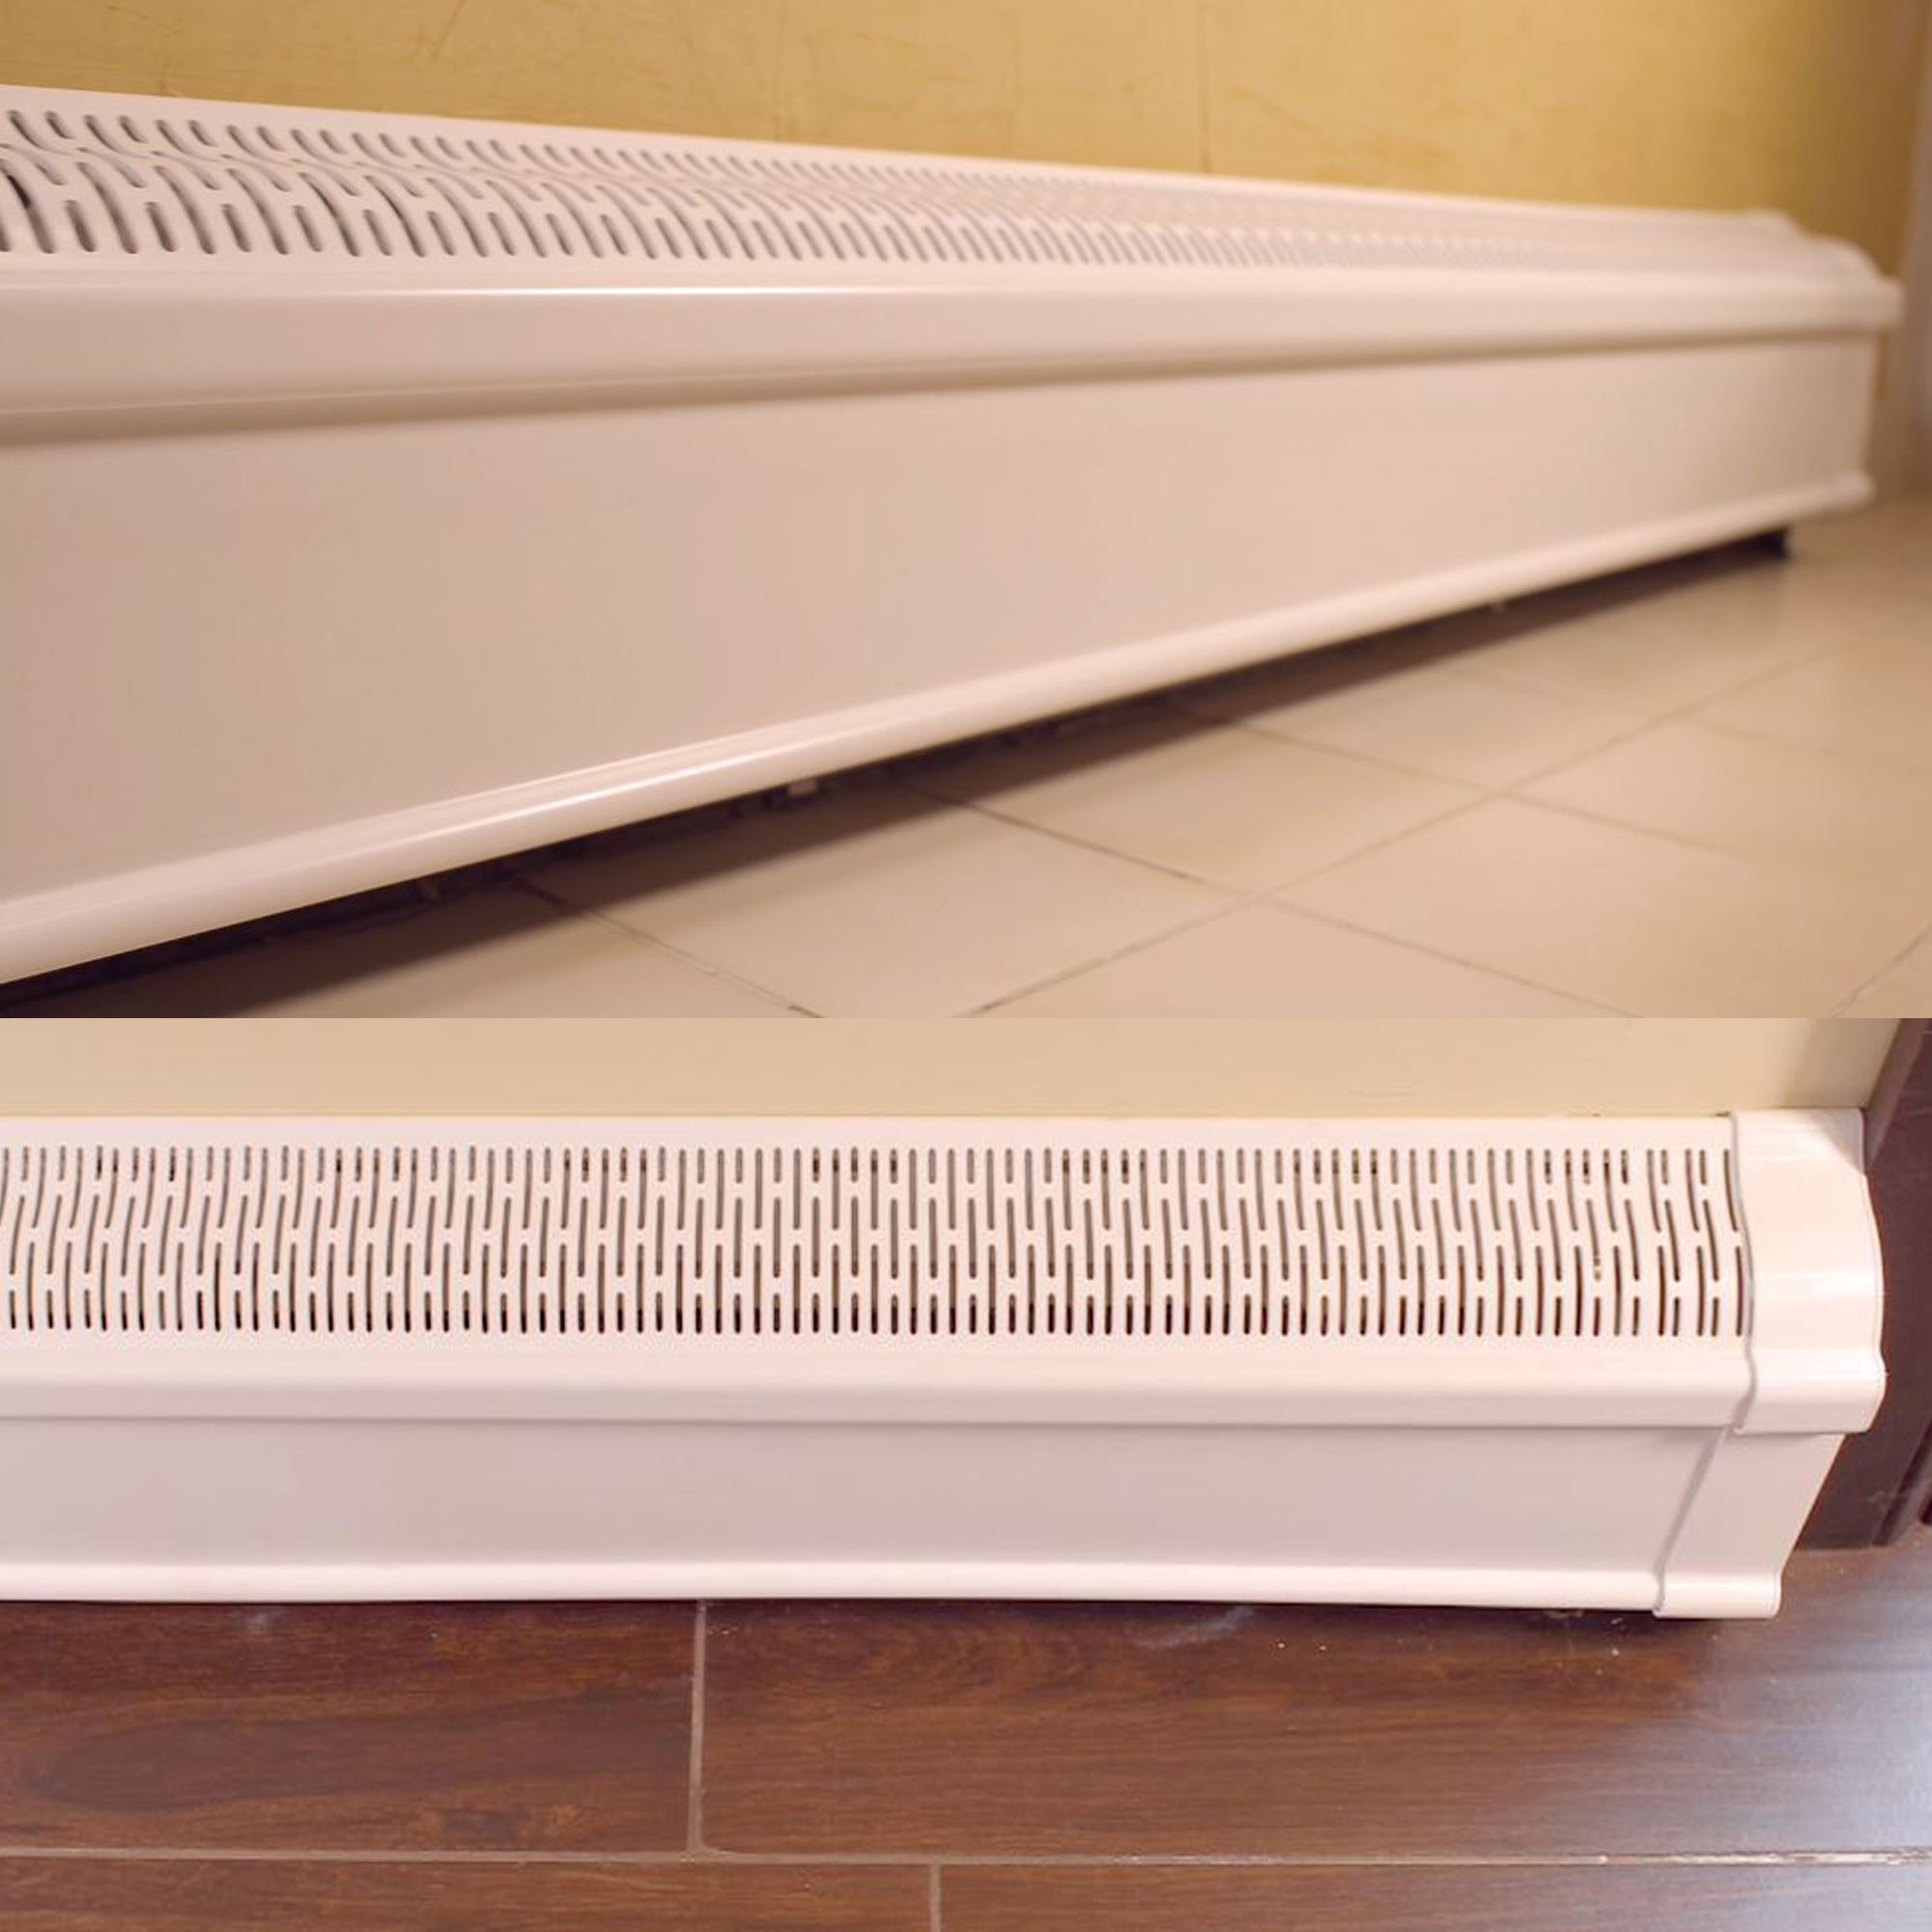 Baseboard Heat Covers COMPLETE SET - INCLUDES Right and Left End Caps | Hot Water, Hydronic Heater Baseboard Cover Enclosure Replacement Kit for Home - Rust-Proof Plastic - 2' White